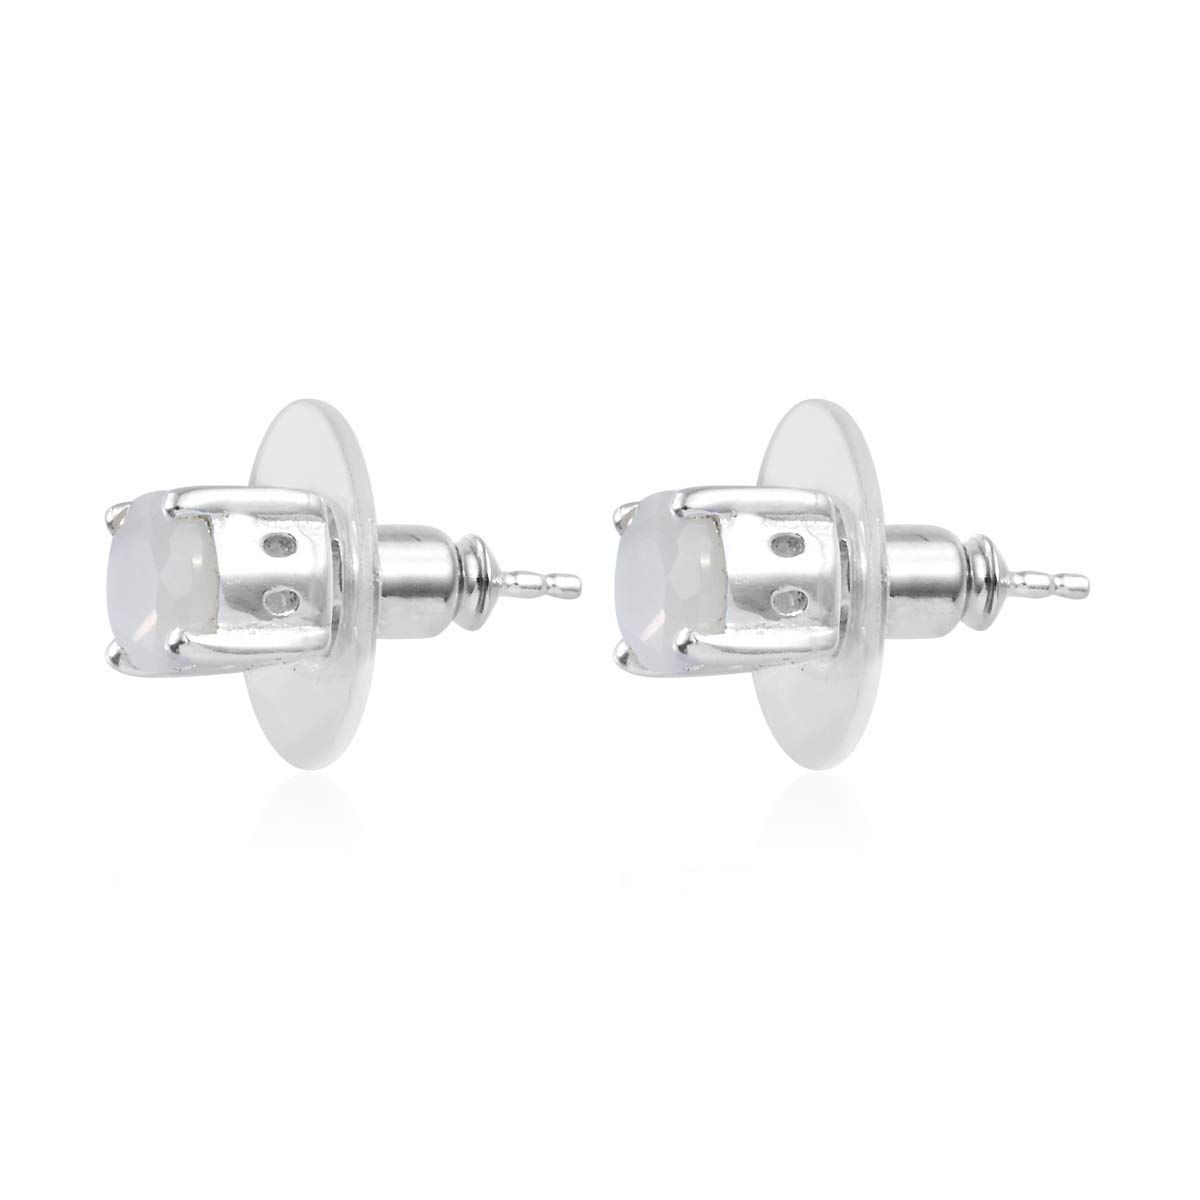 Solitaire Earrings 925 Sterling Silver Oval White Moonstone Gift Jewelry for Women Cttw 1.7